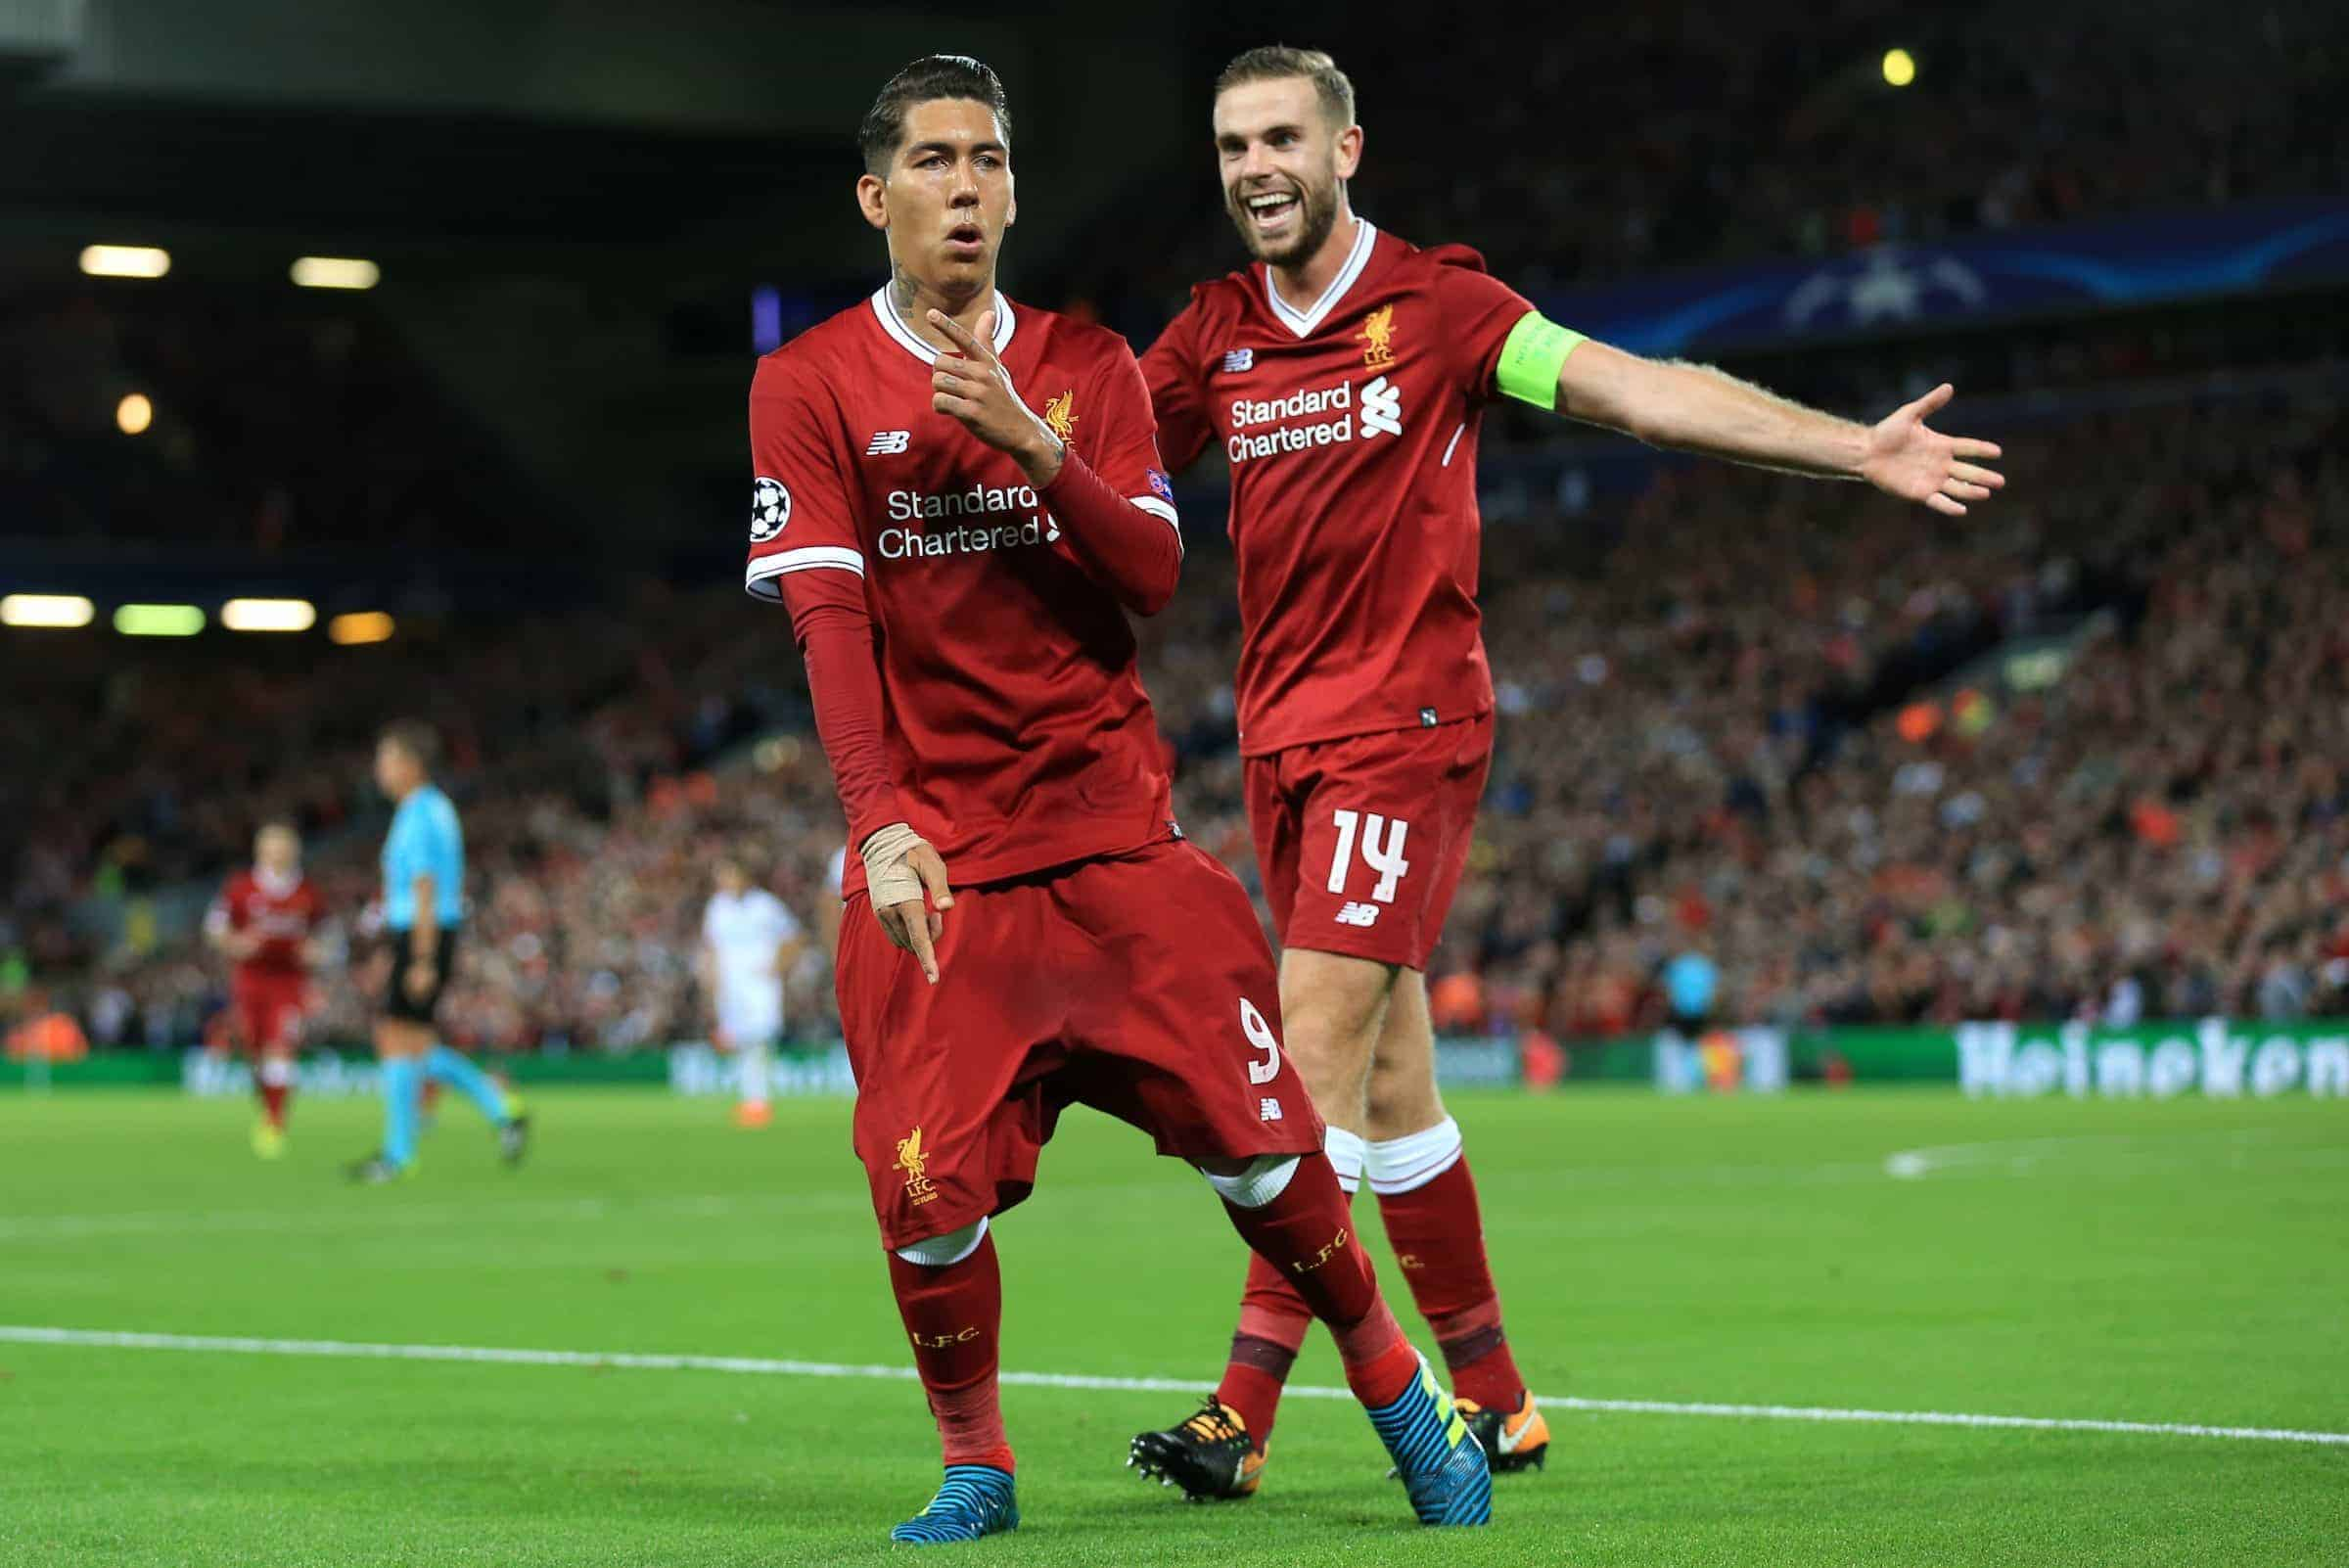 Liverpool's Roberto Firmino celebrates scoring his side's fourth goal of the game with team mate Liverpool's Jordan Henderson